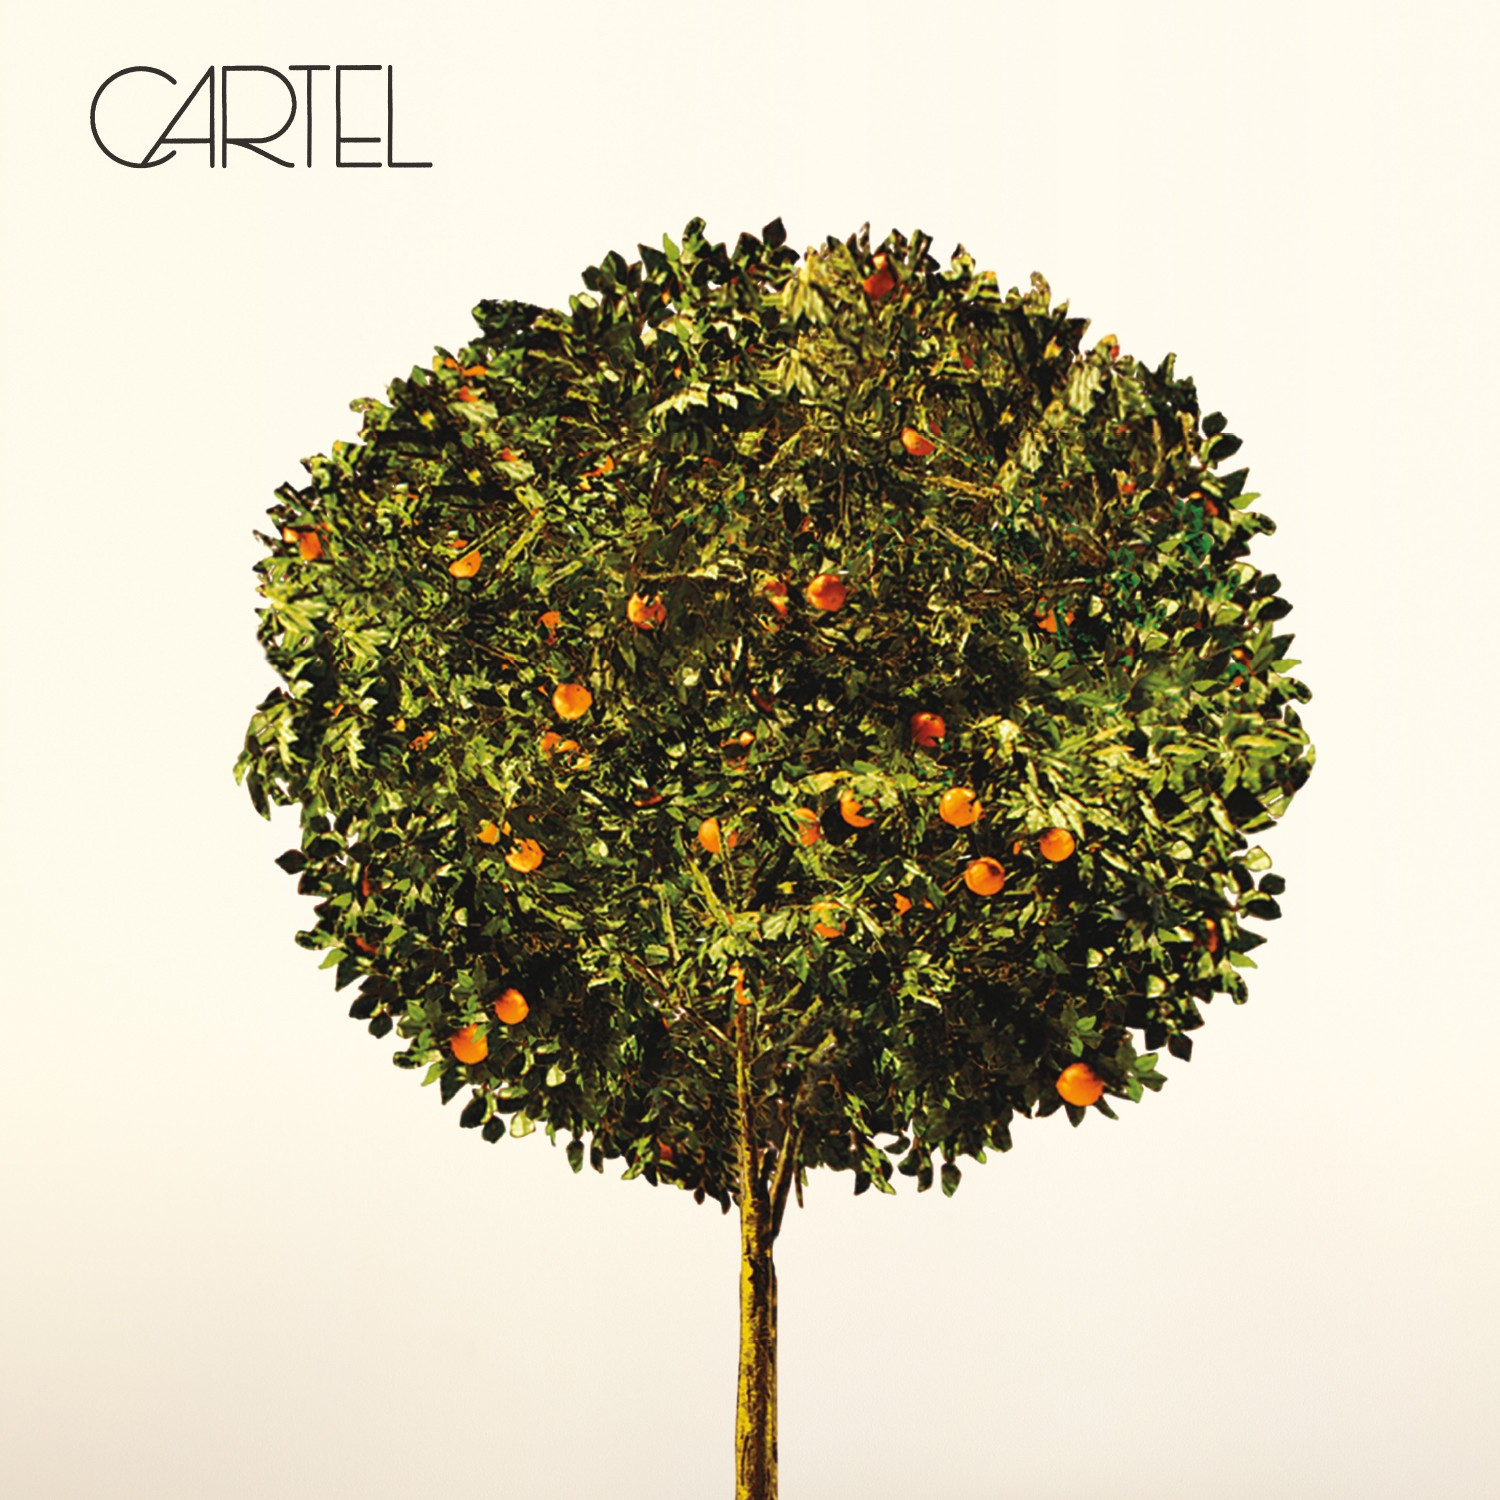 Cartel - Cartel (Yellow) 2XLP Vinyl